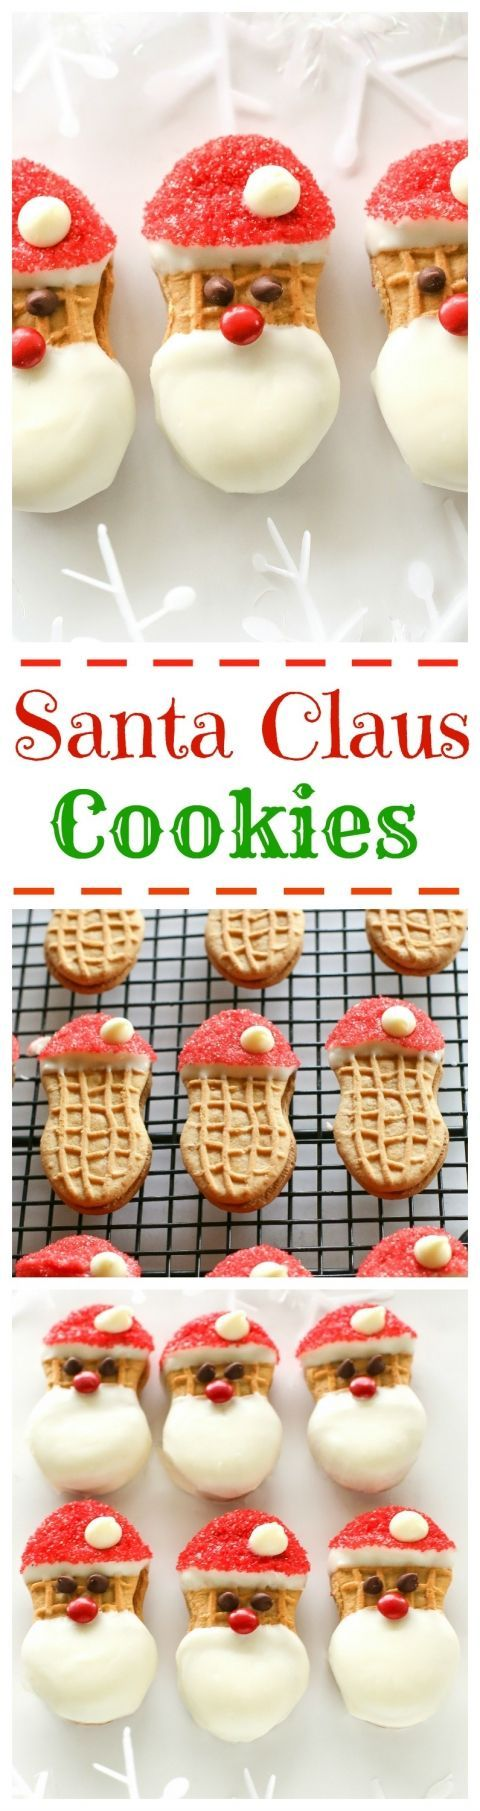 Santa Claus Cookies - easy Nutter Butter based cookies to make with your kids that are fancy enough to give to your friends.